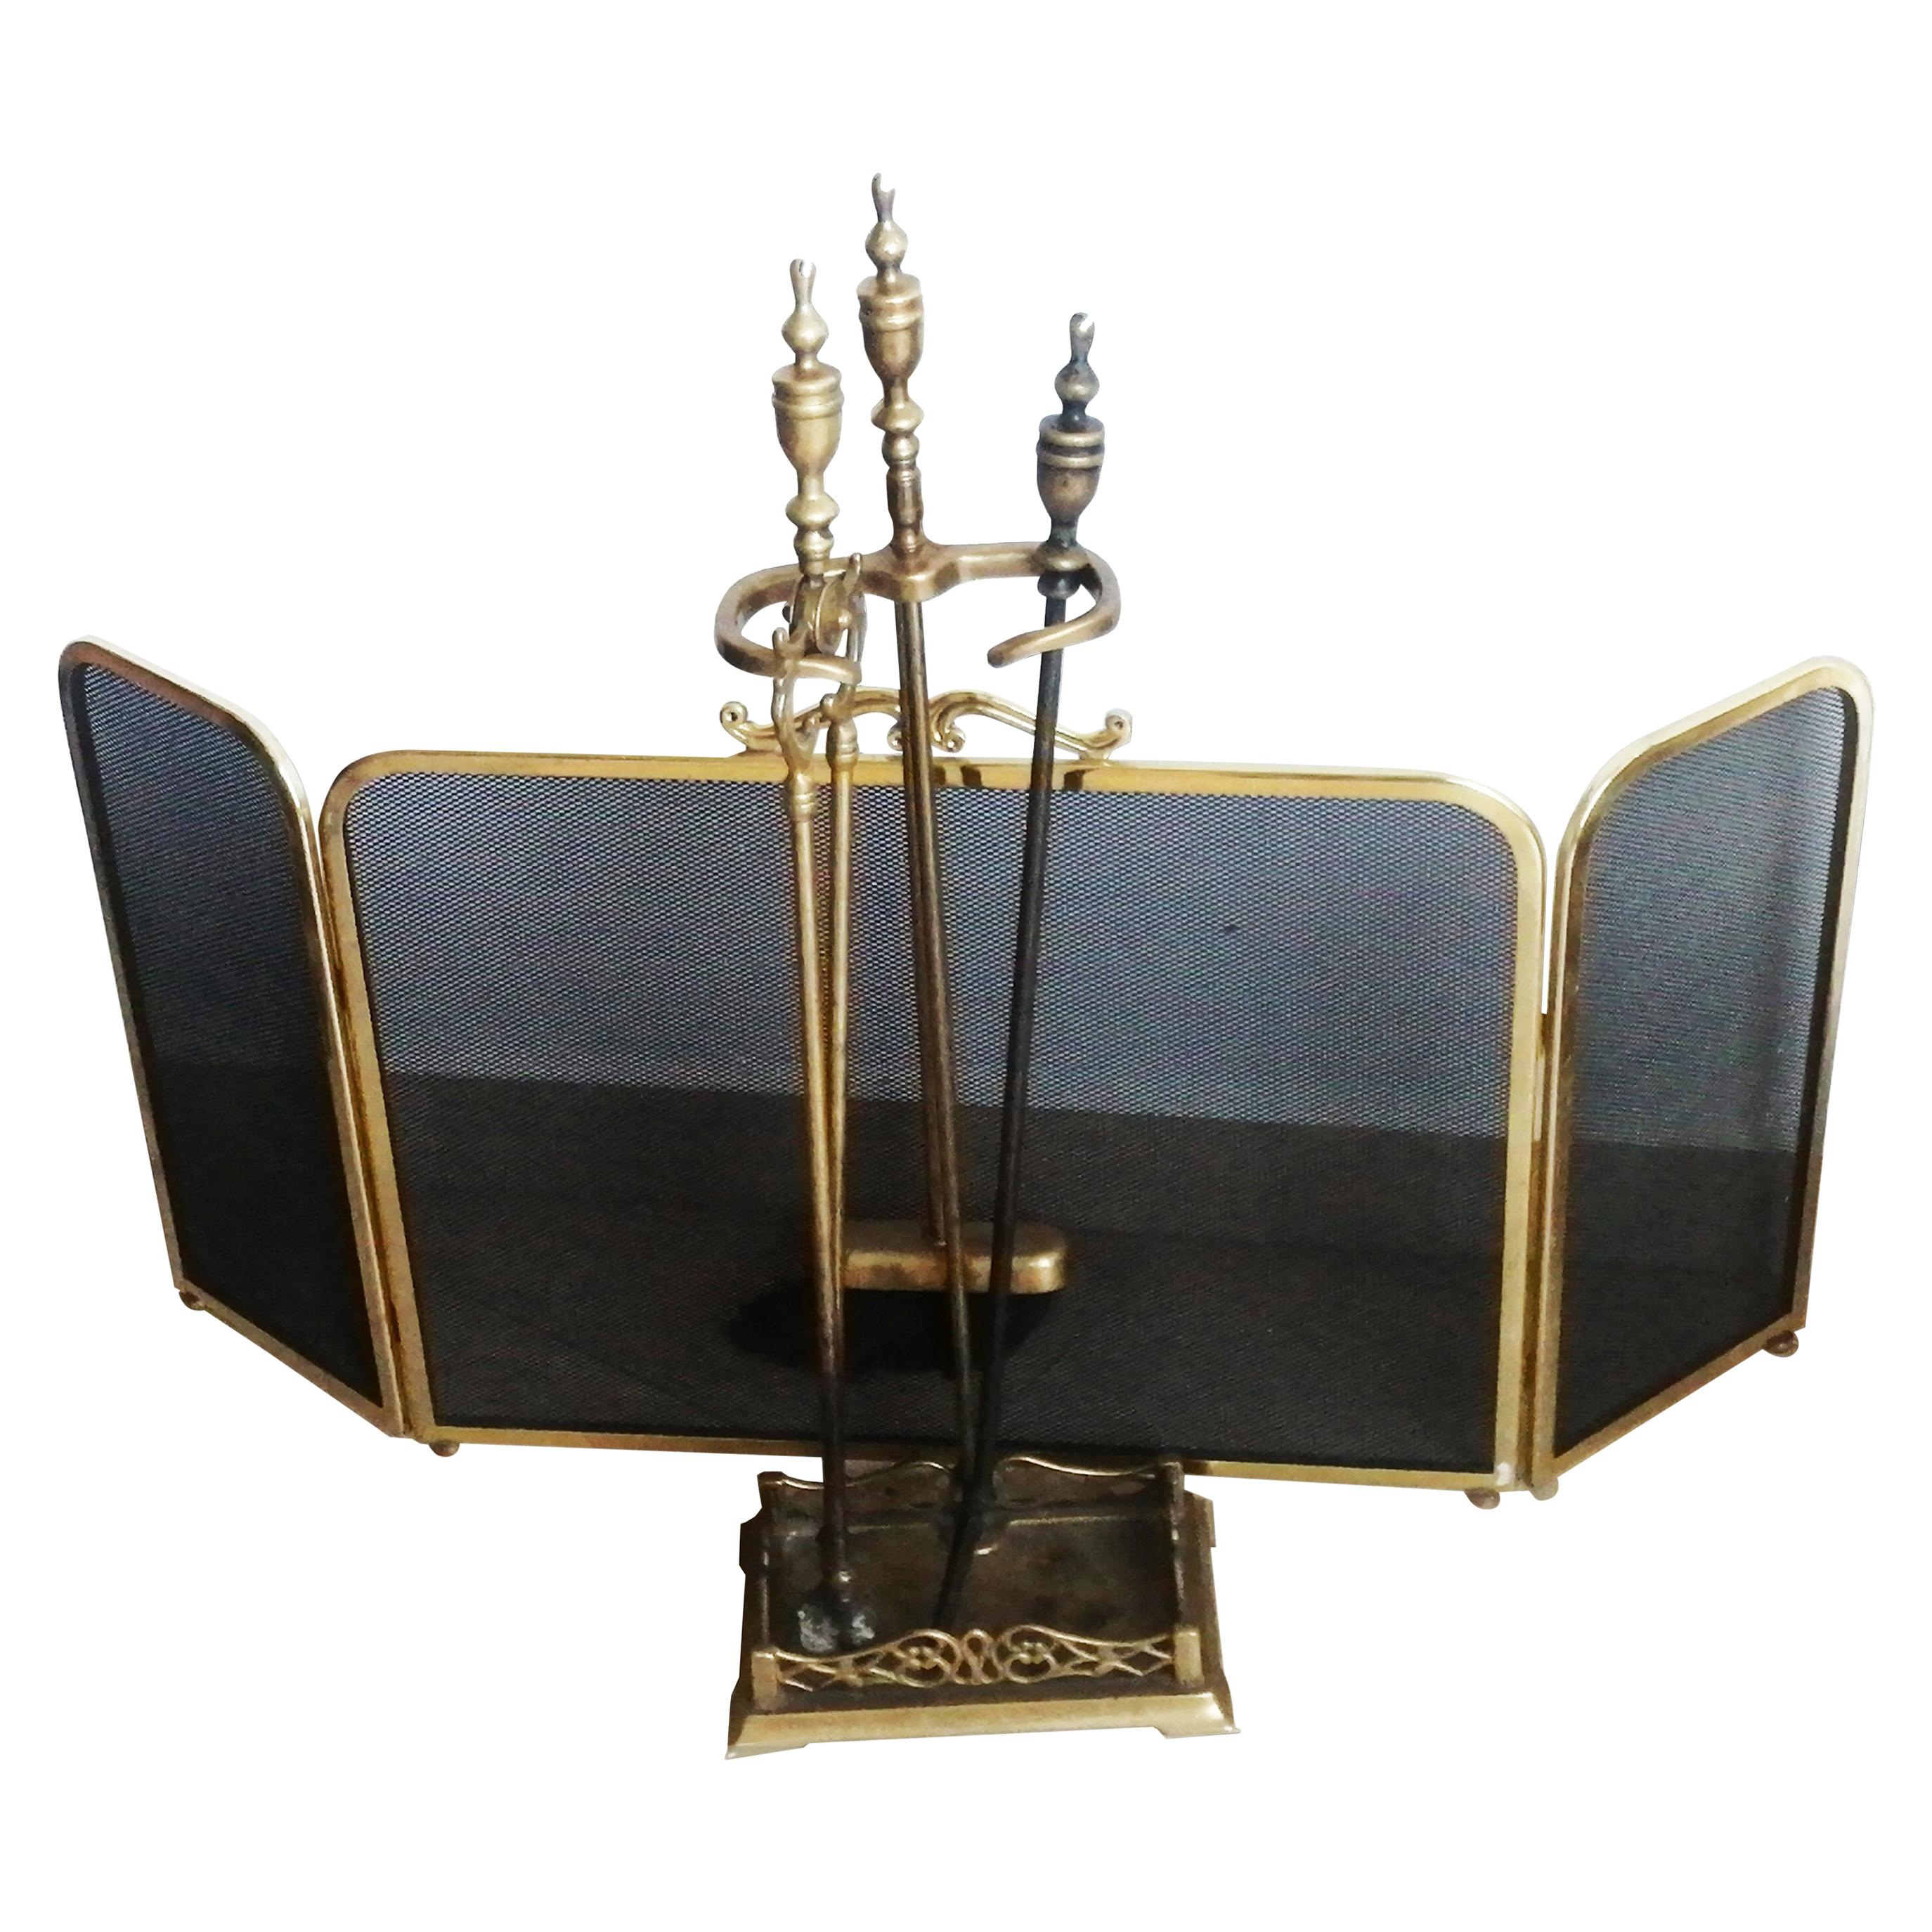 Fire Tools and Screen Brass or Bronze Modernist, France, 20th Century